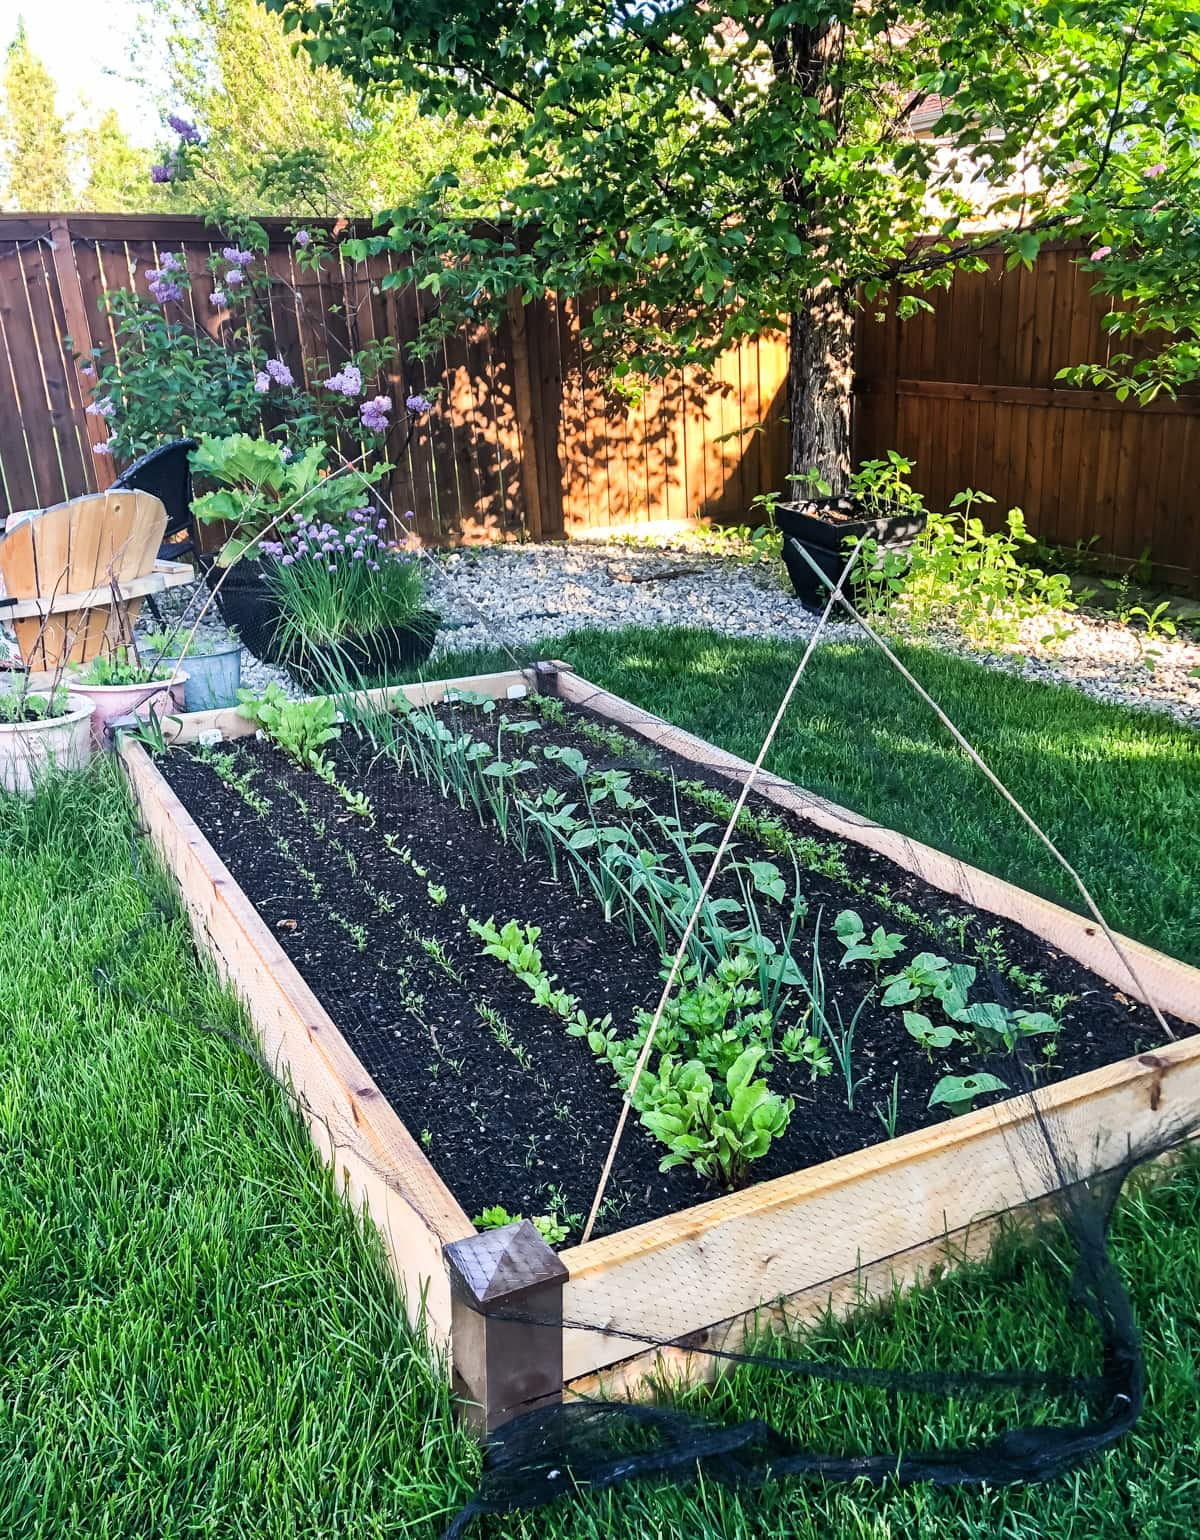 a small urban vegetable garden filled with young seedlings. in the background are more pots of vegetables and trees